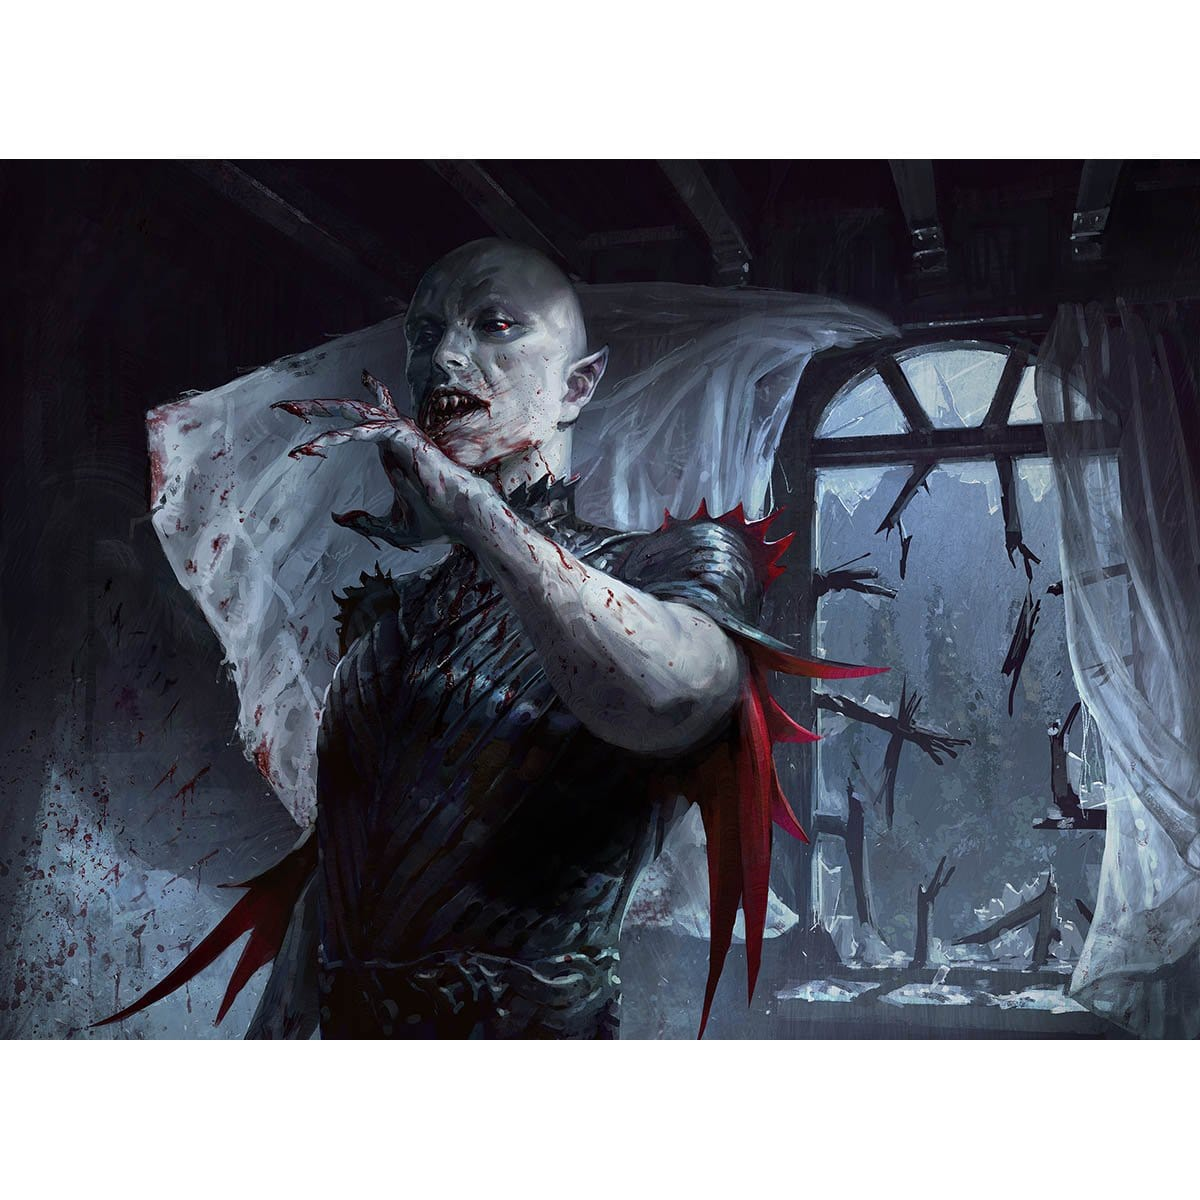 Blood Burglar Print - Print - Original Magic Art - Accessories for Magic the Gathering and other card games